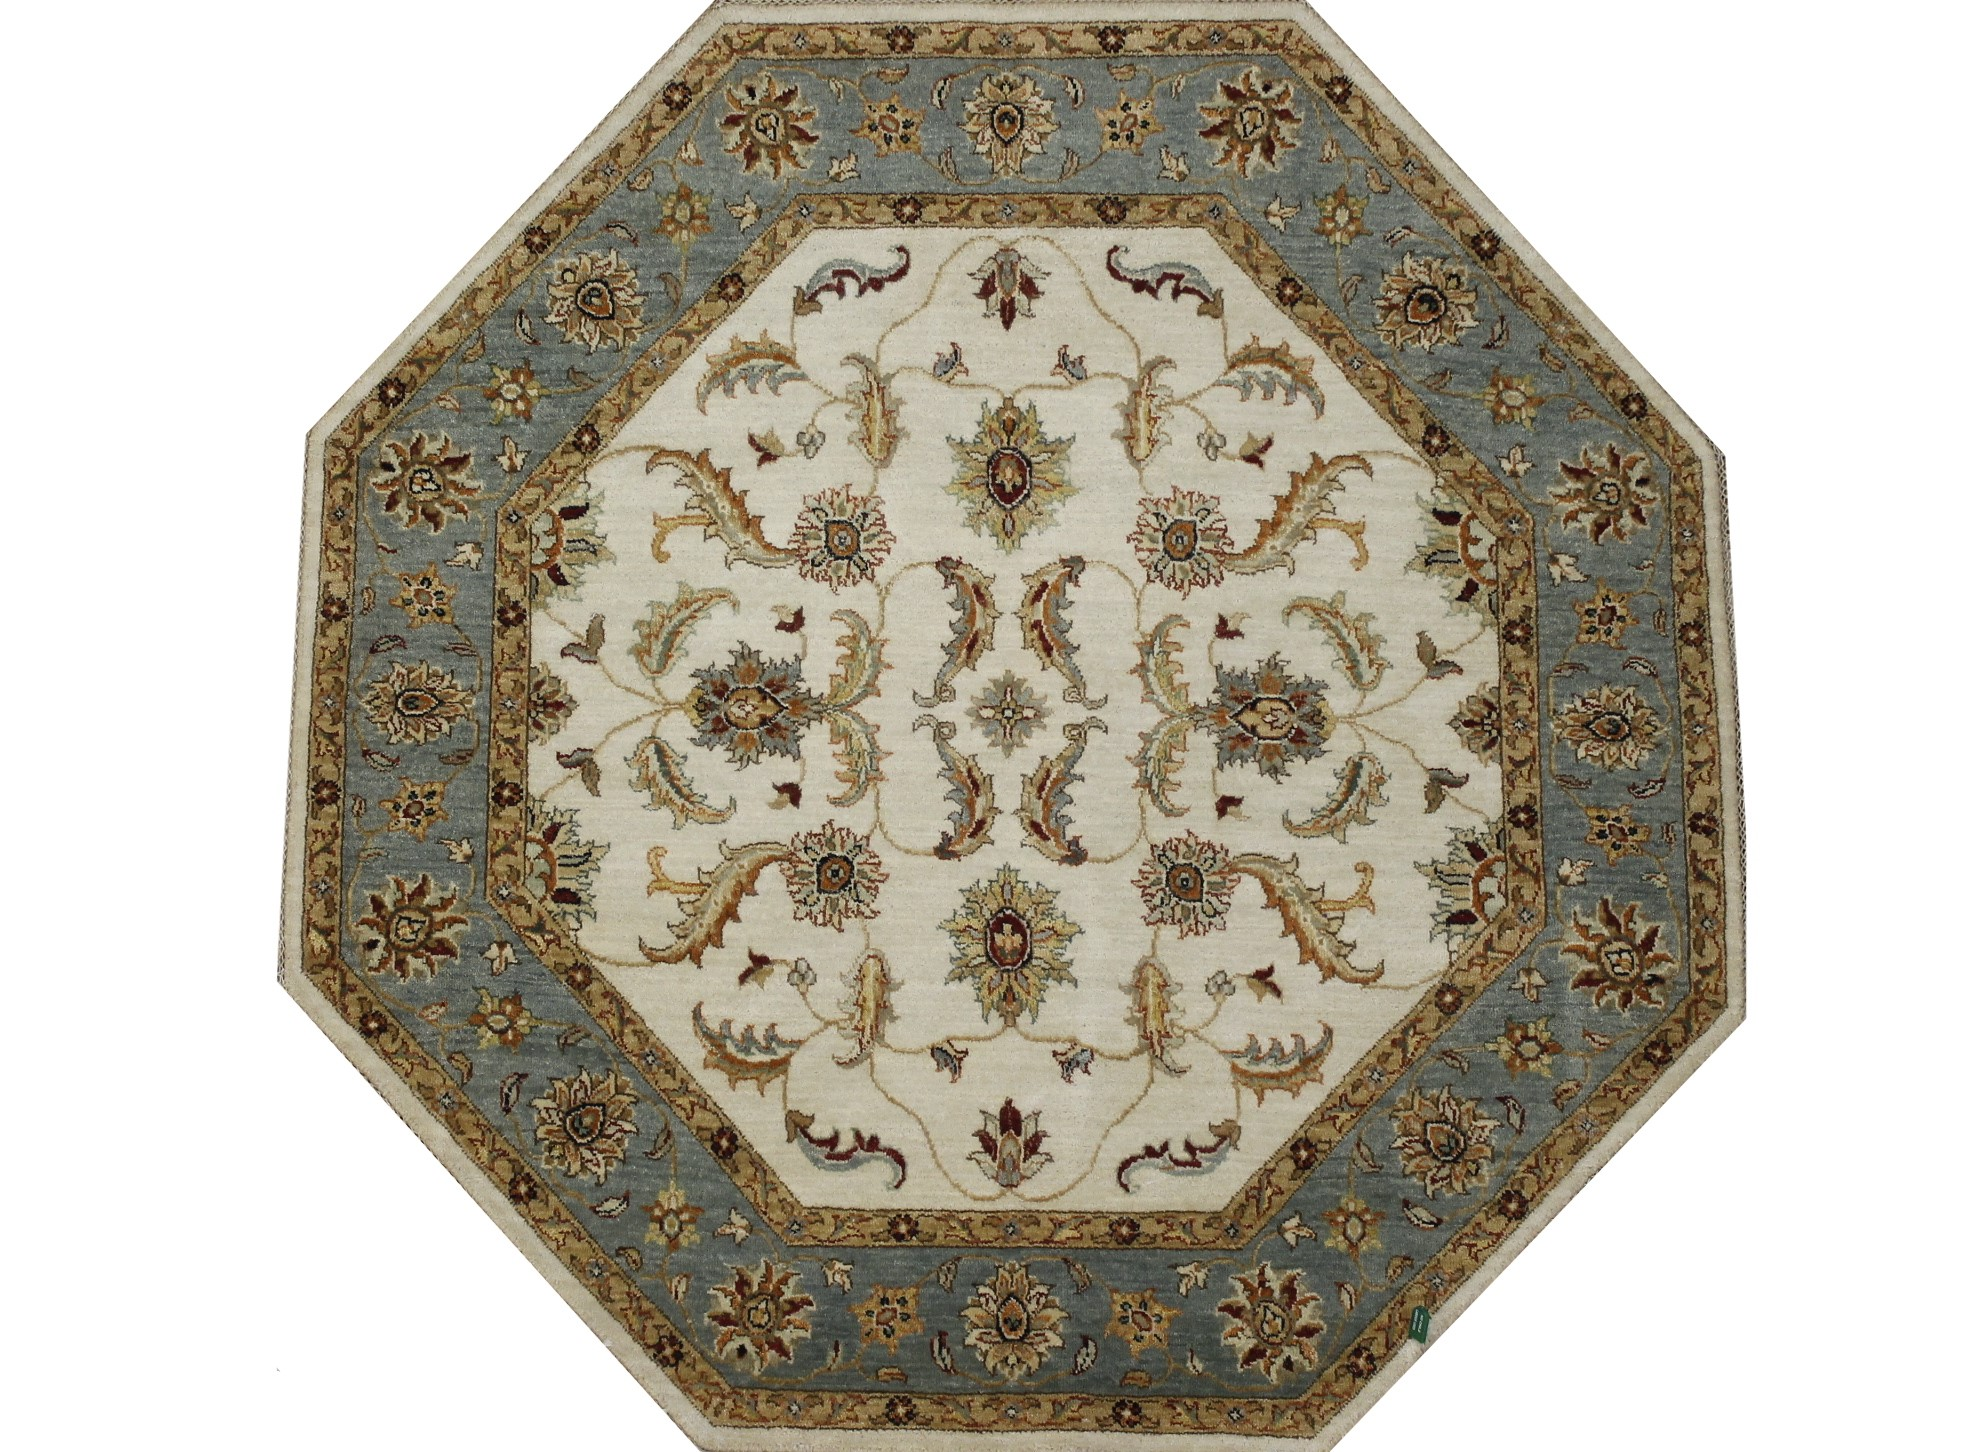 Traditional Hand Knotted Wool Area Rug - MR022403